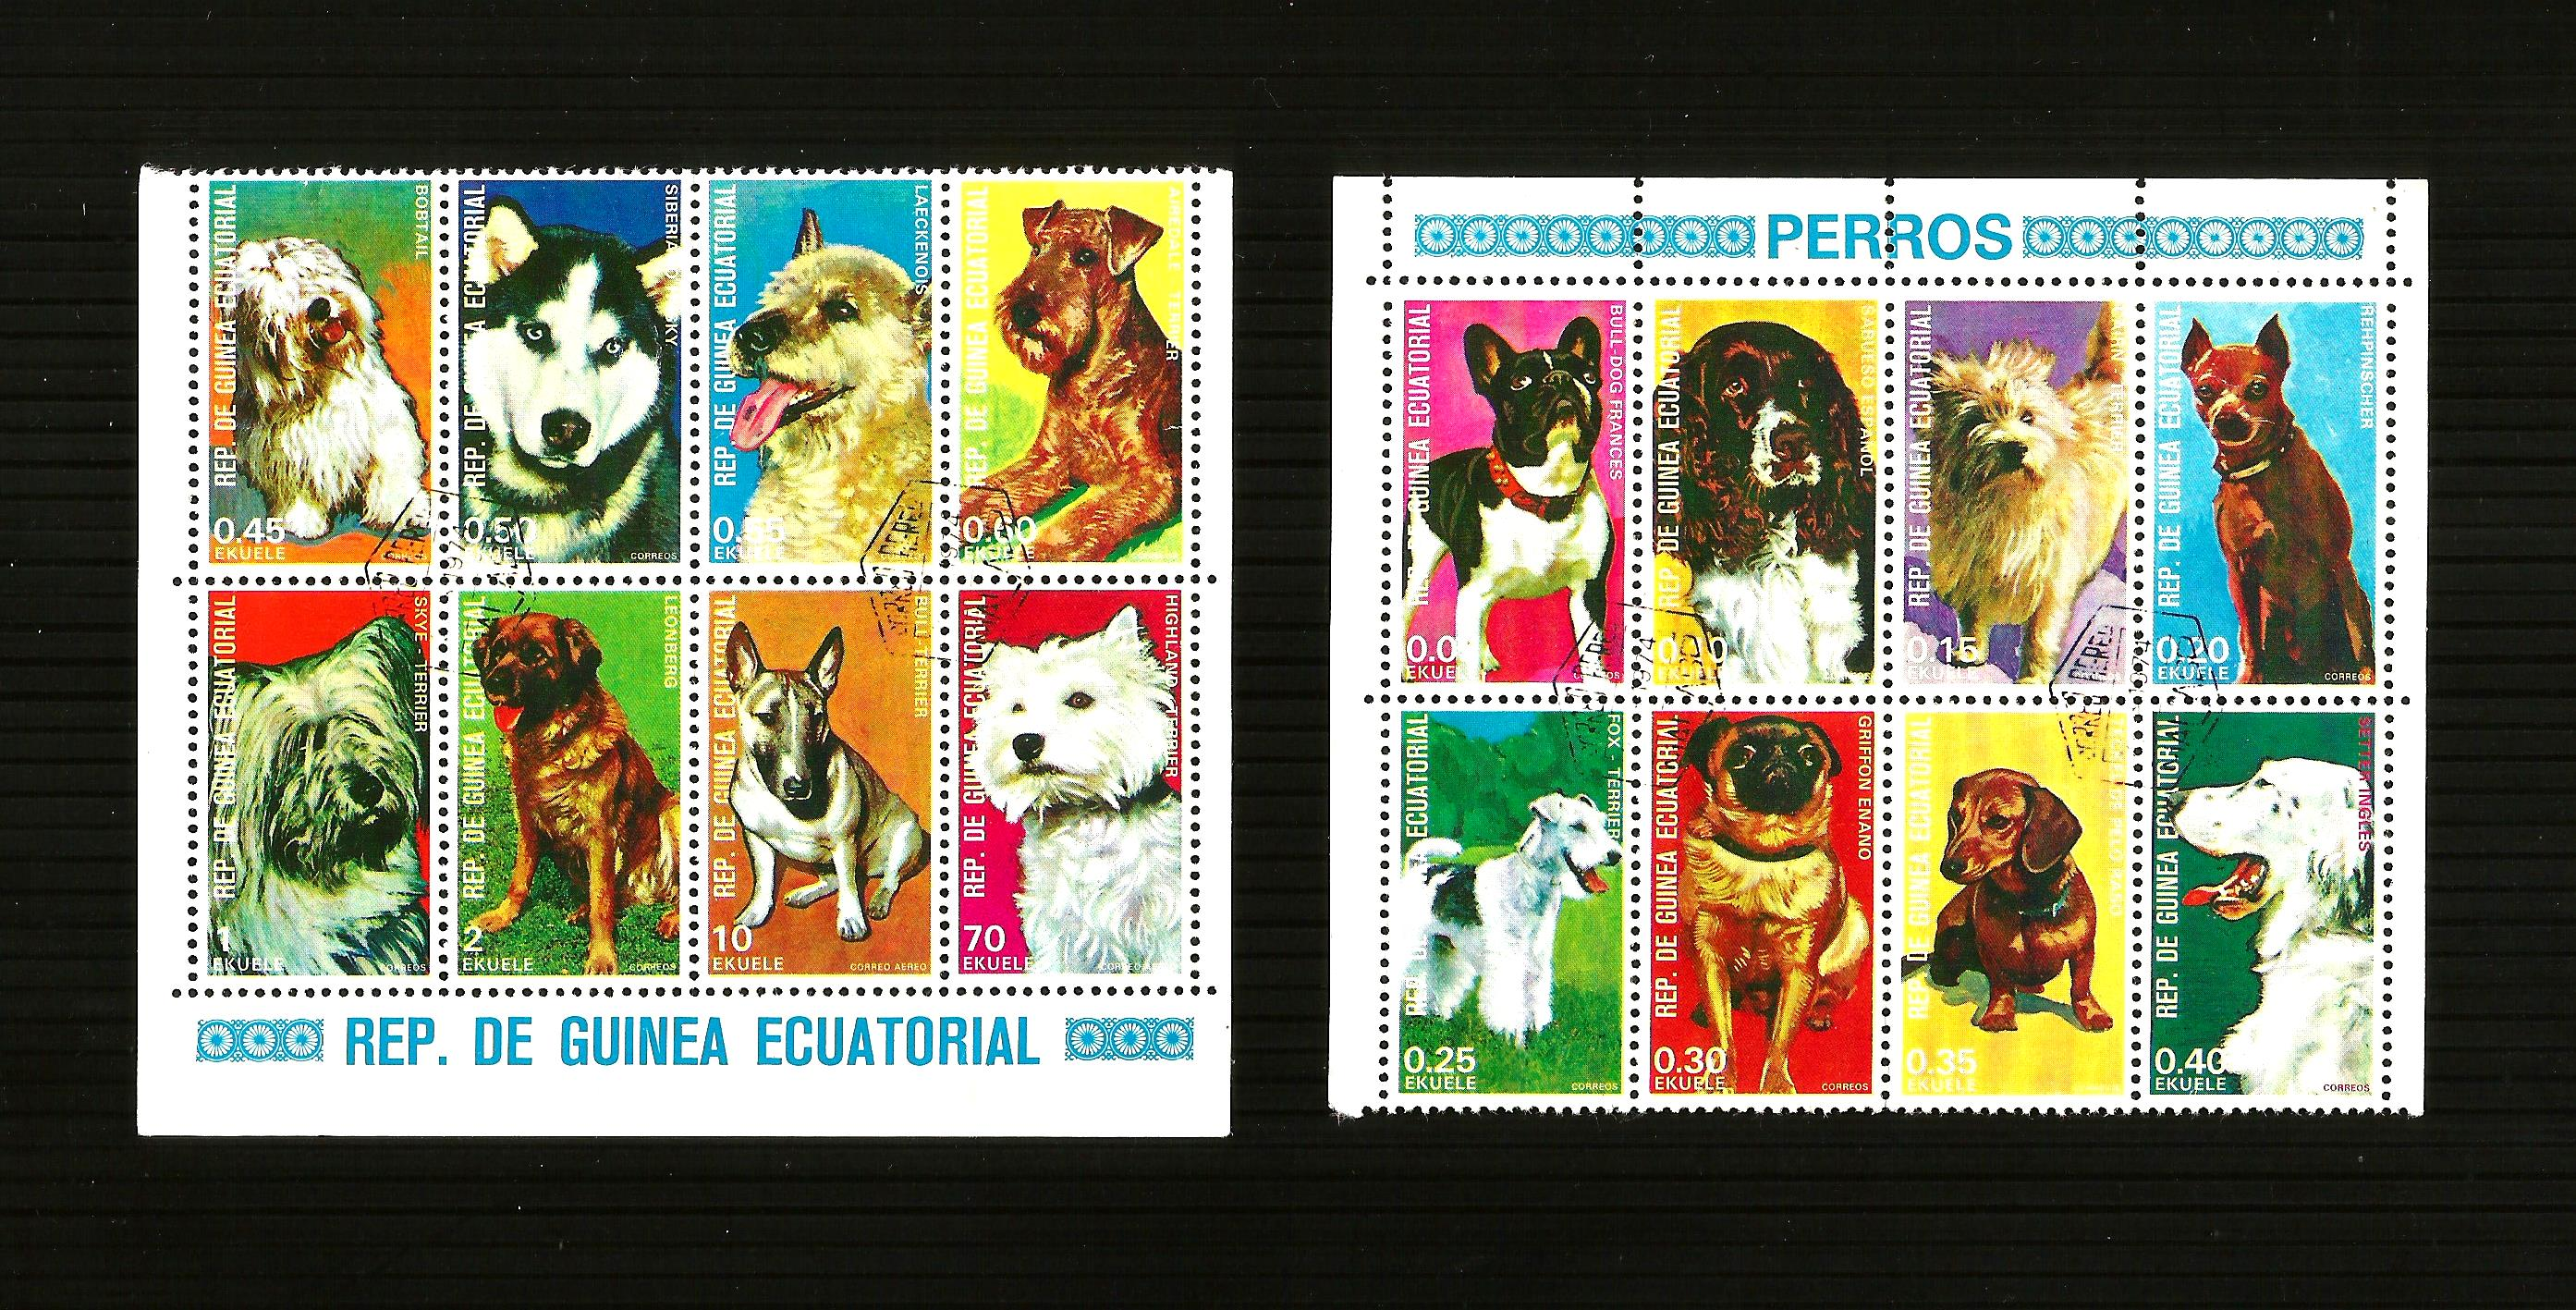 THEMATIC DOG POSTAGE  STAMPS  X 2 SHEETS CTO